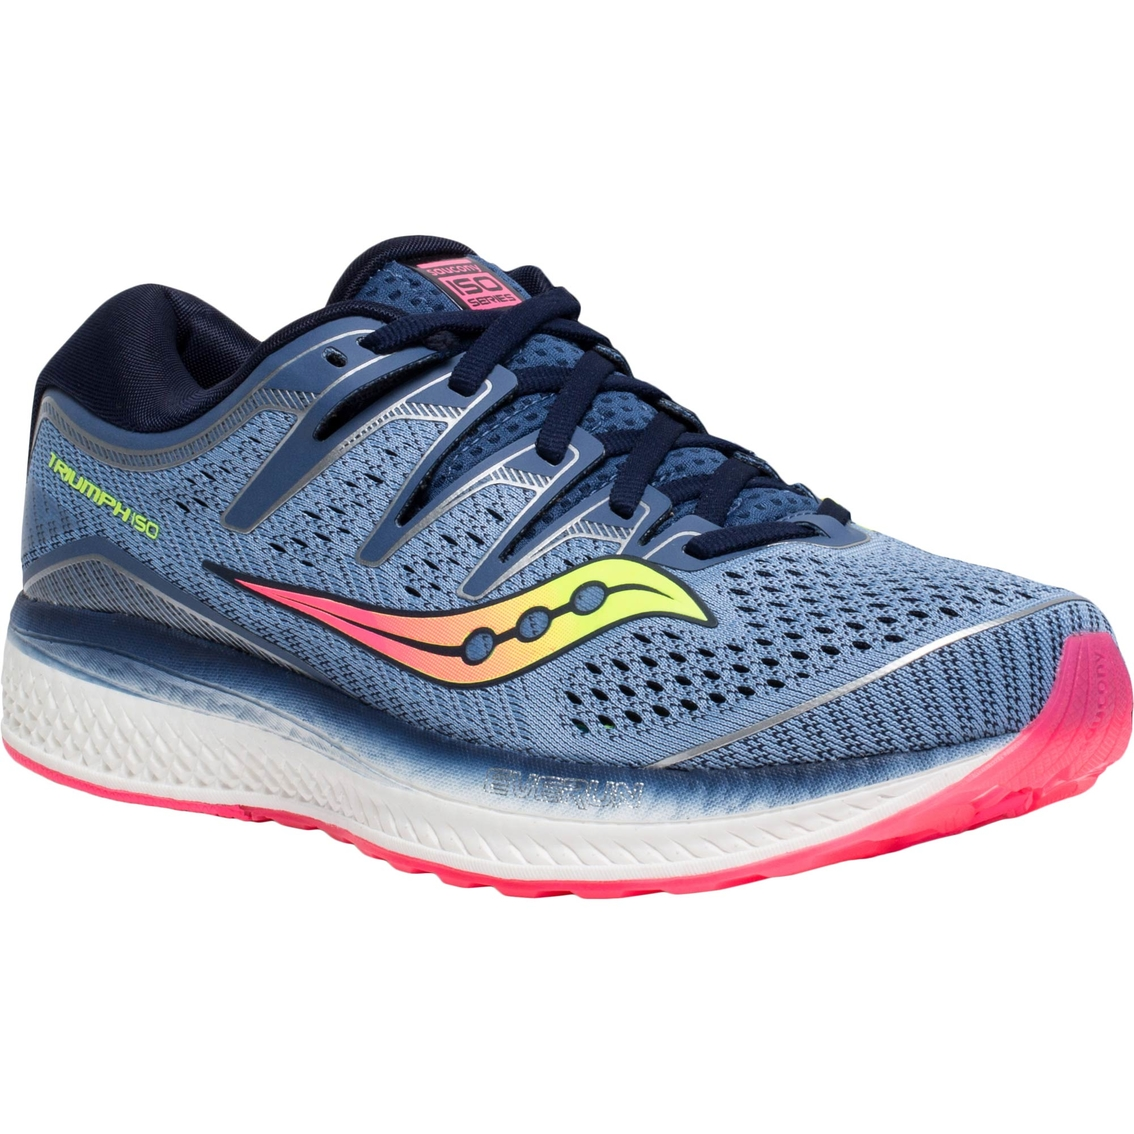 Saucony discount coupon Discount textbooks hours